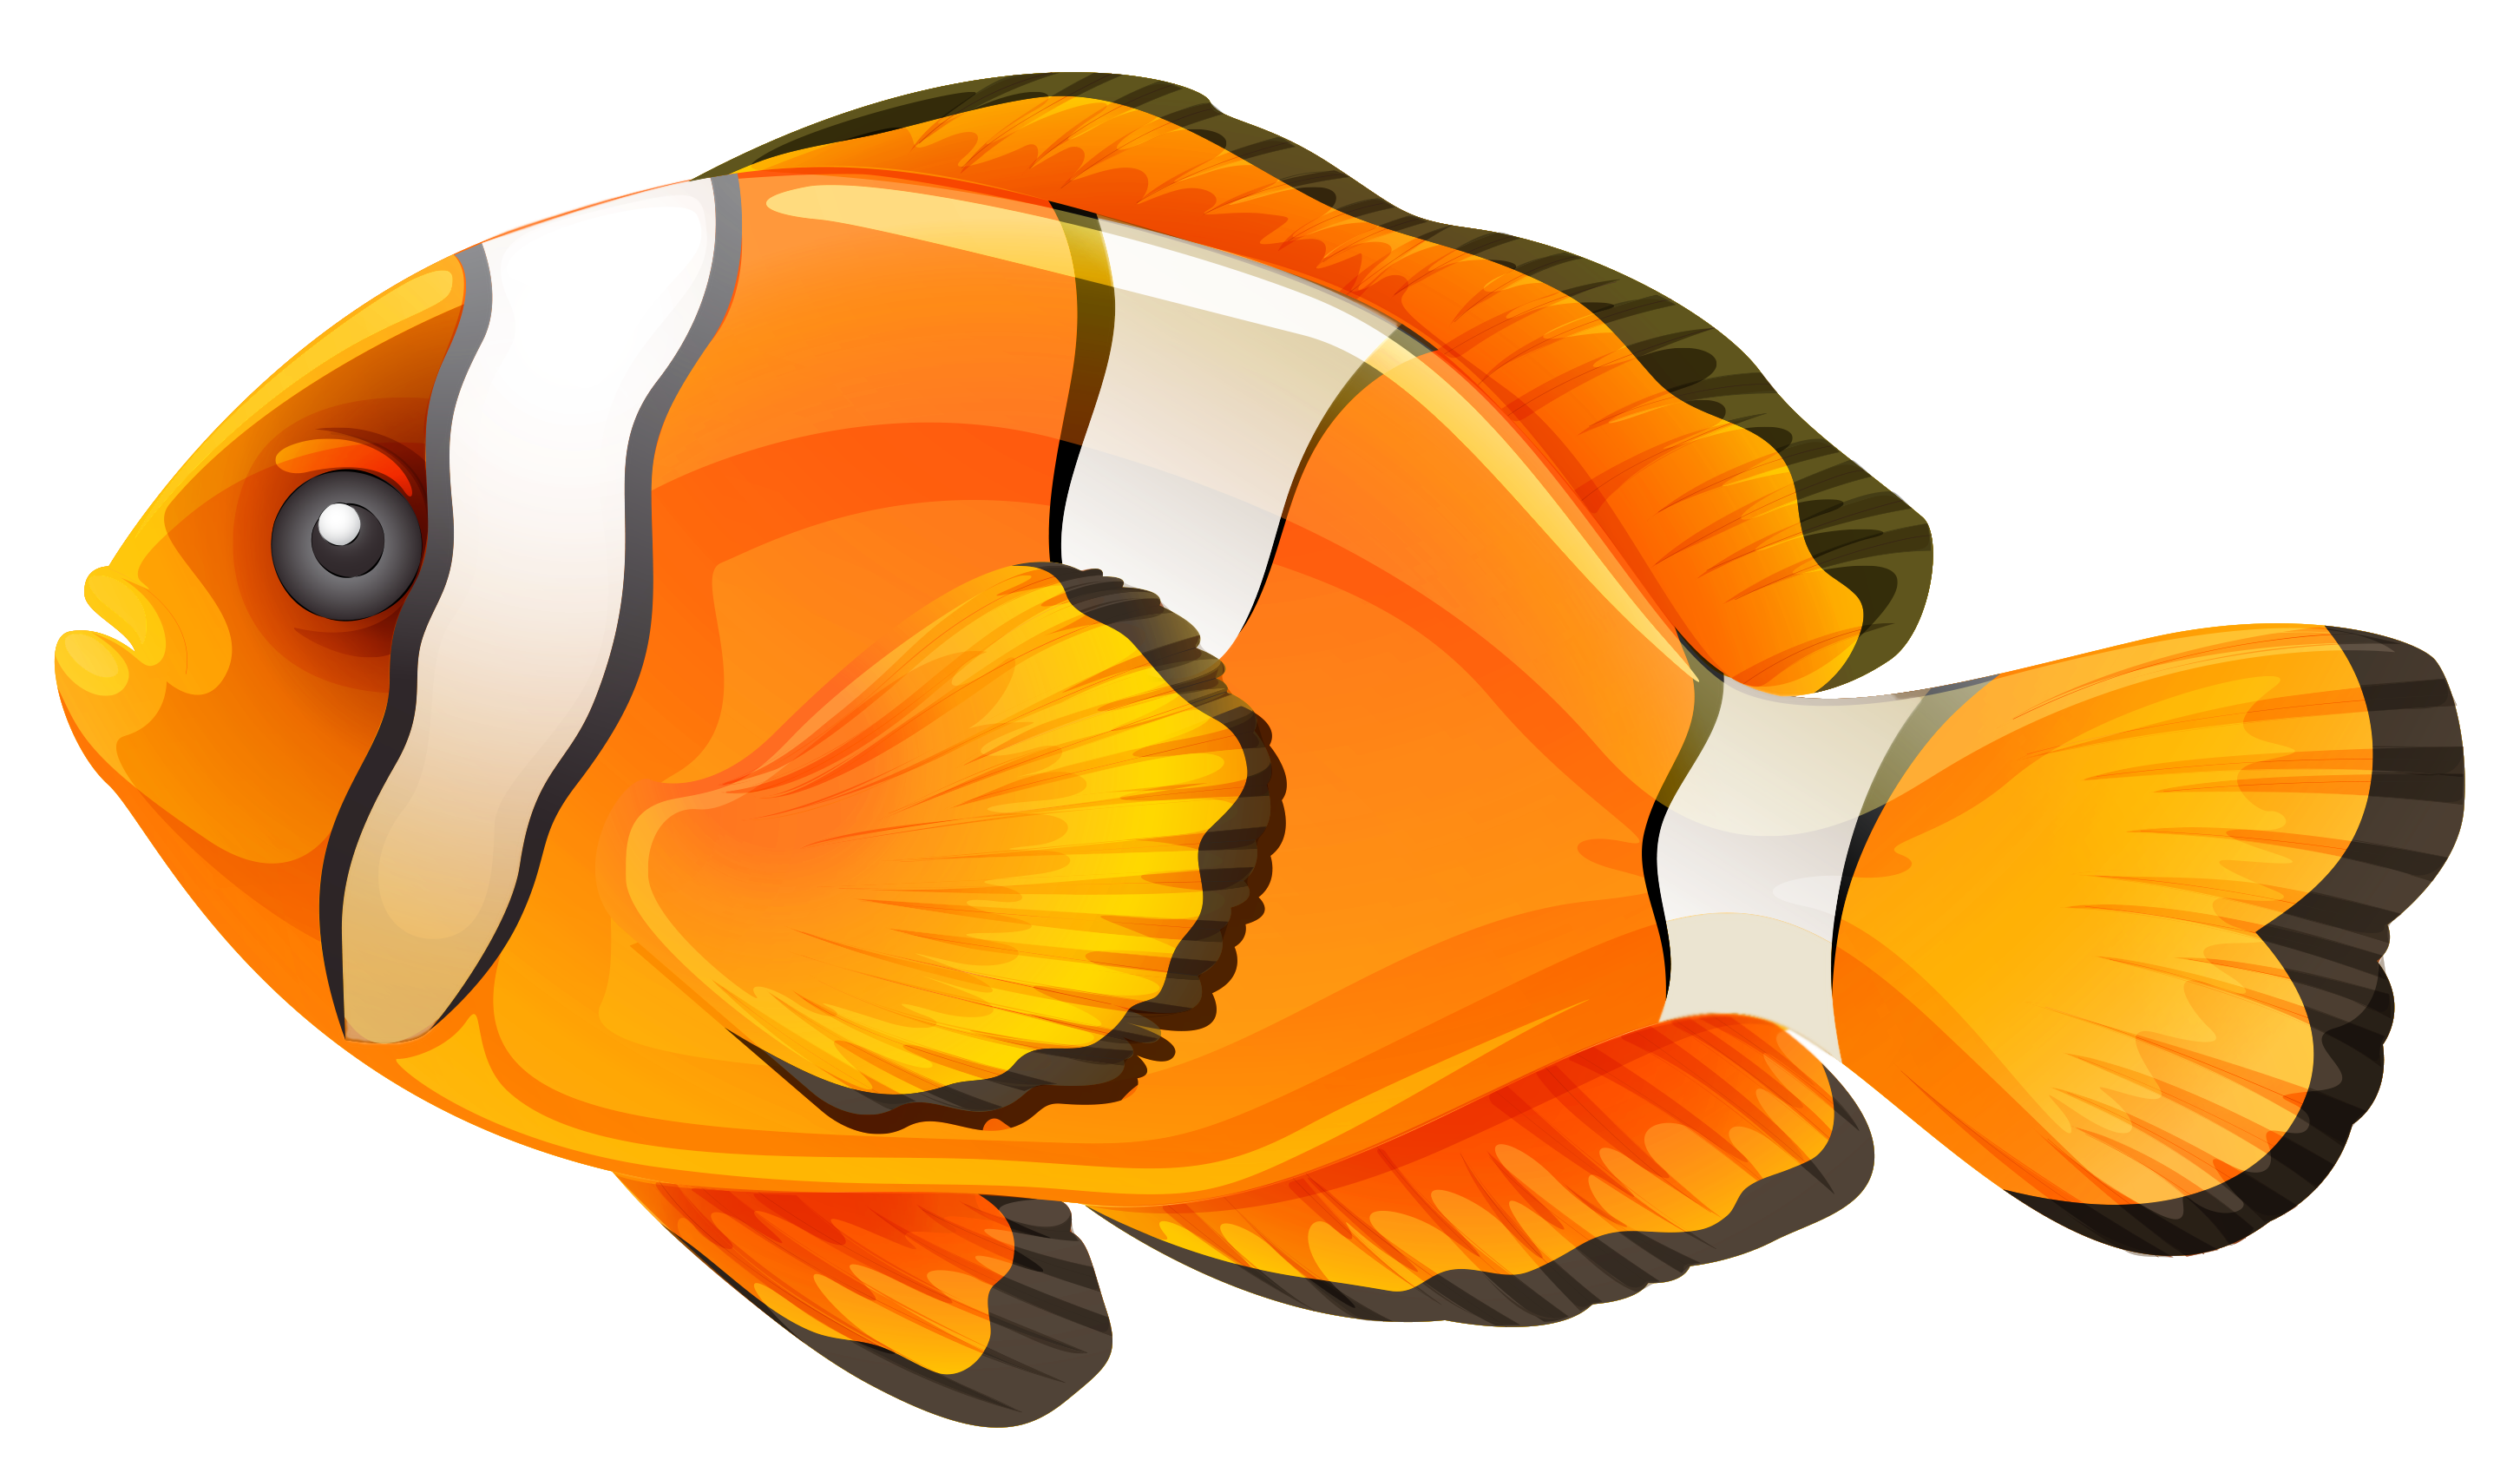 Png image free download. Clipart fish face